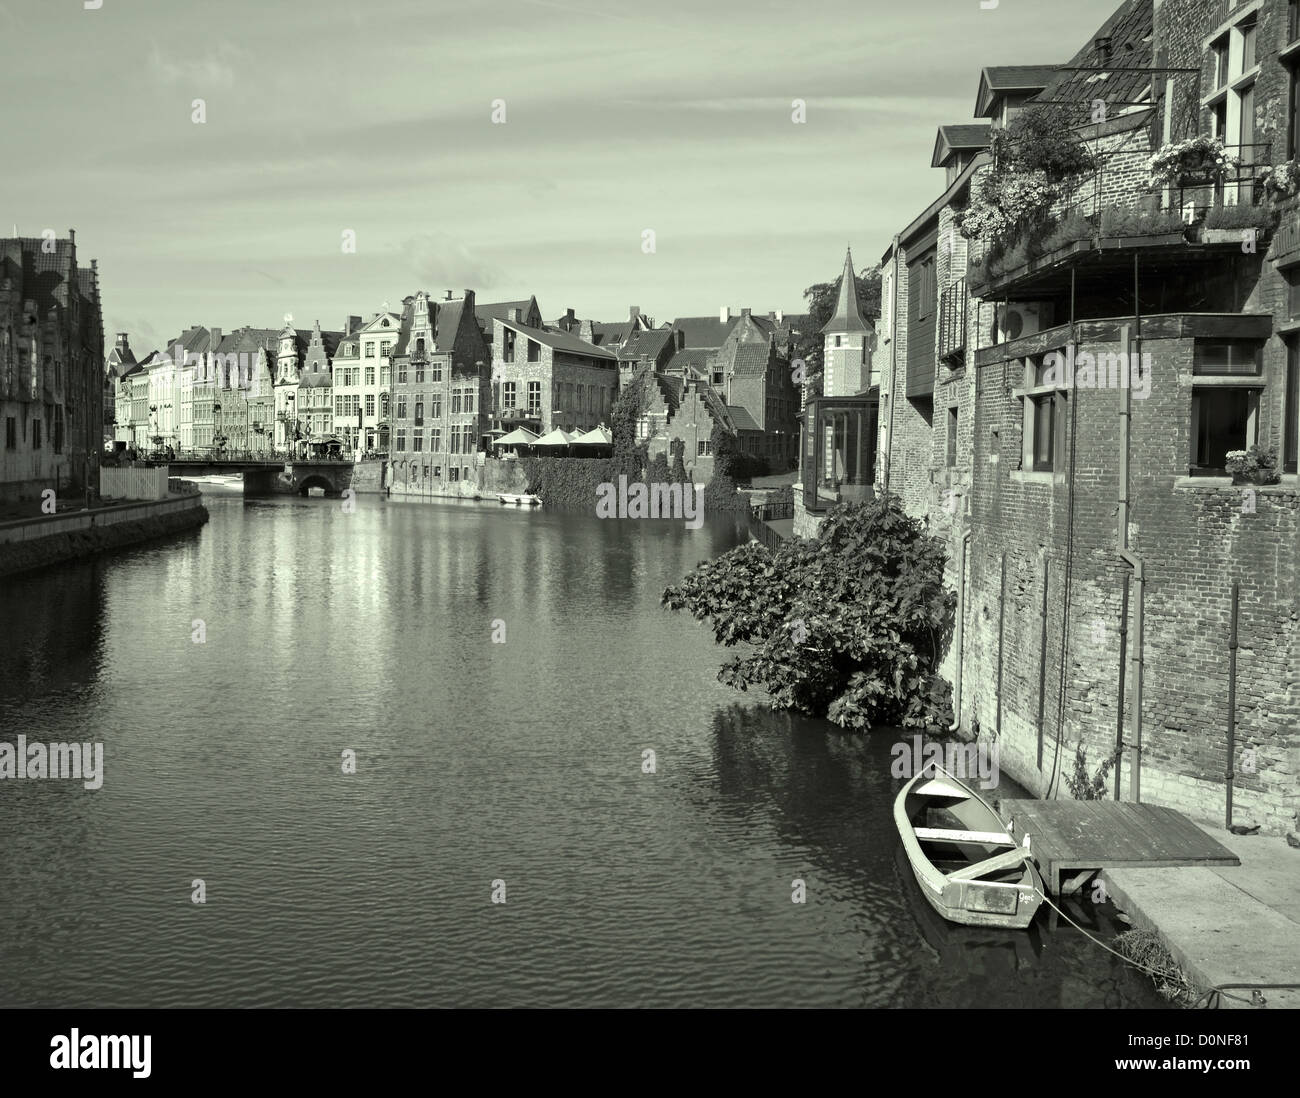 Ghent - canal and typical brick houses in morning light - Stock Image